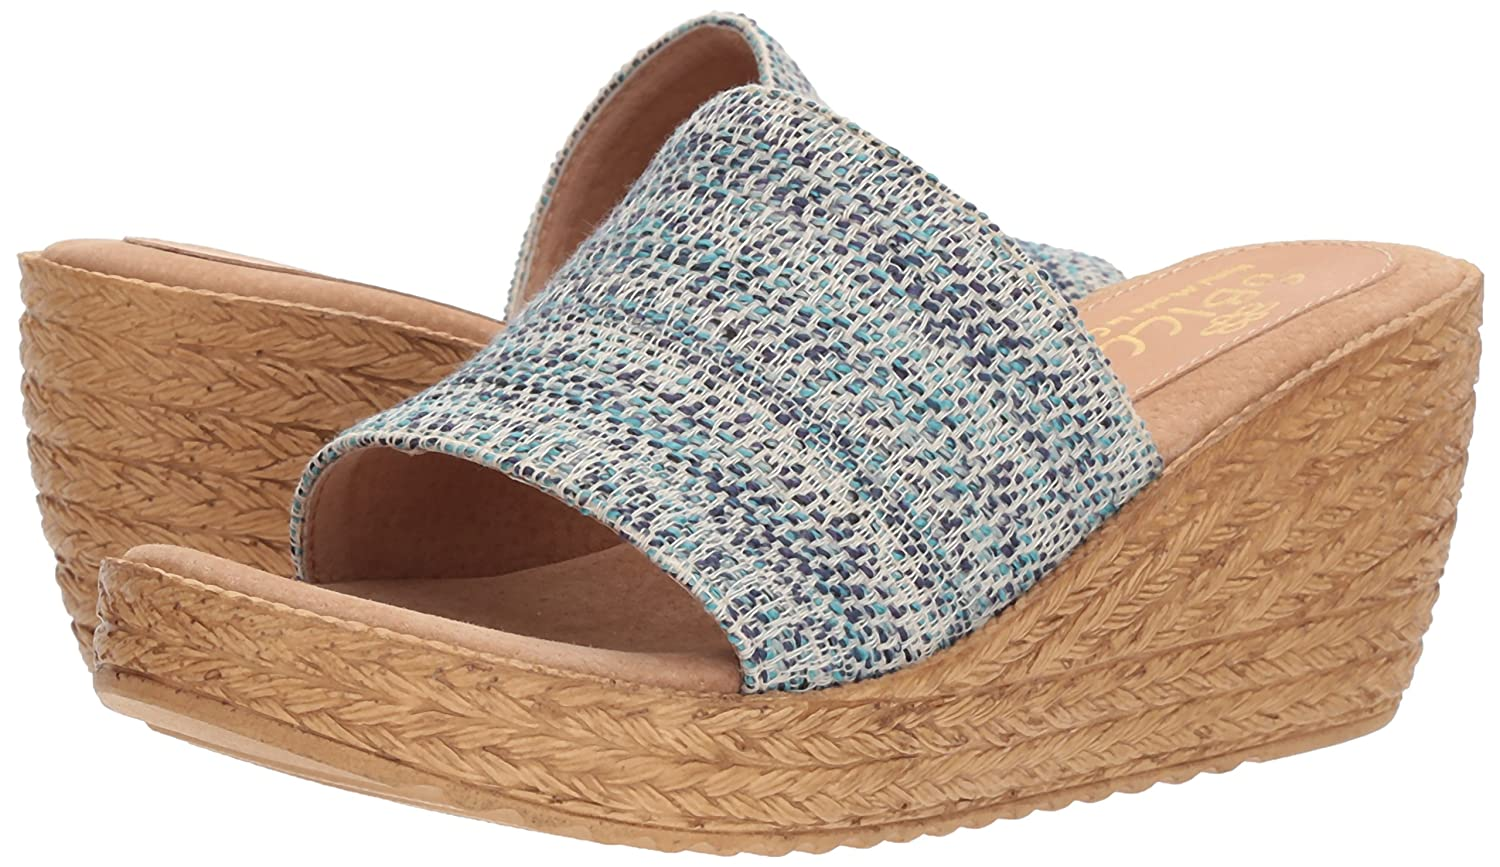 Sbicca Women's Fairy Slide Sandal B0765T9J5S 8 B(M) US|Blue/Multi